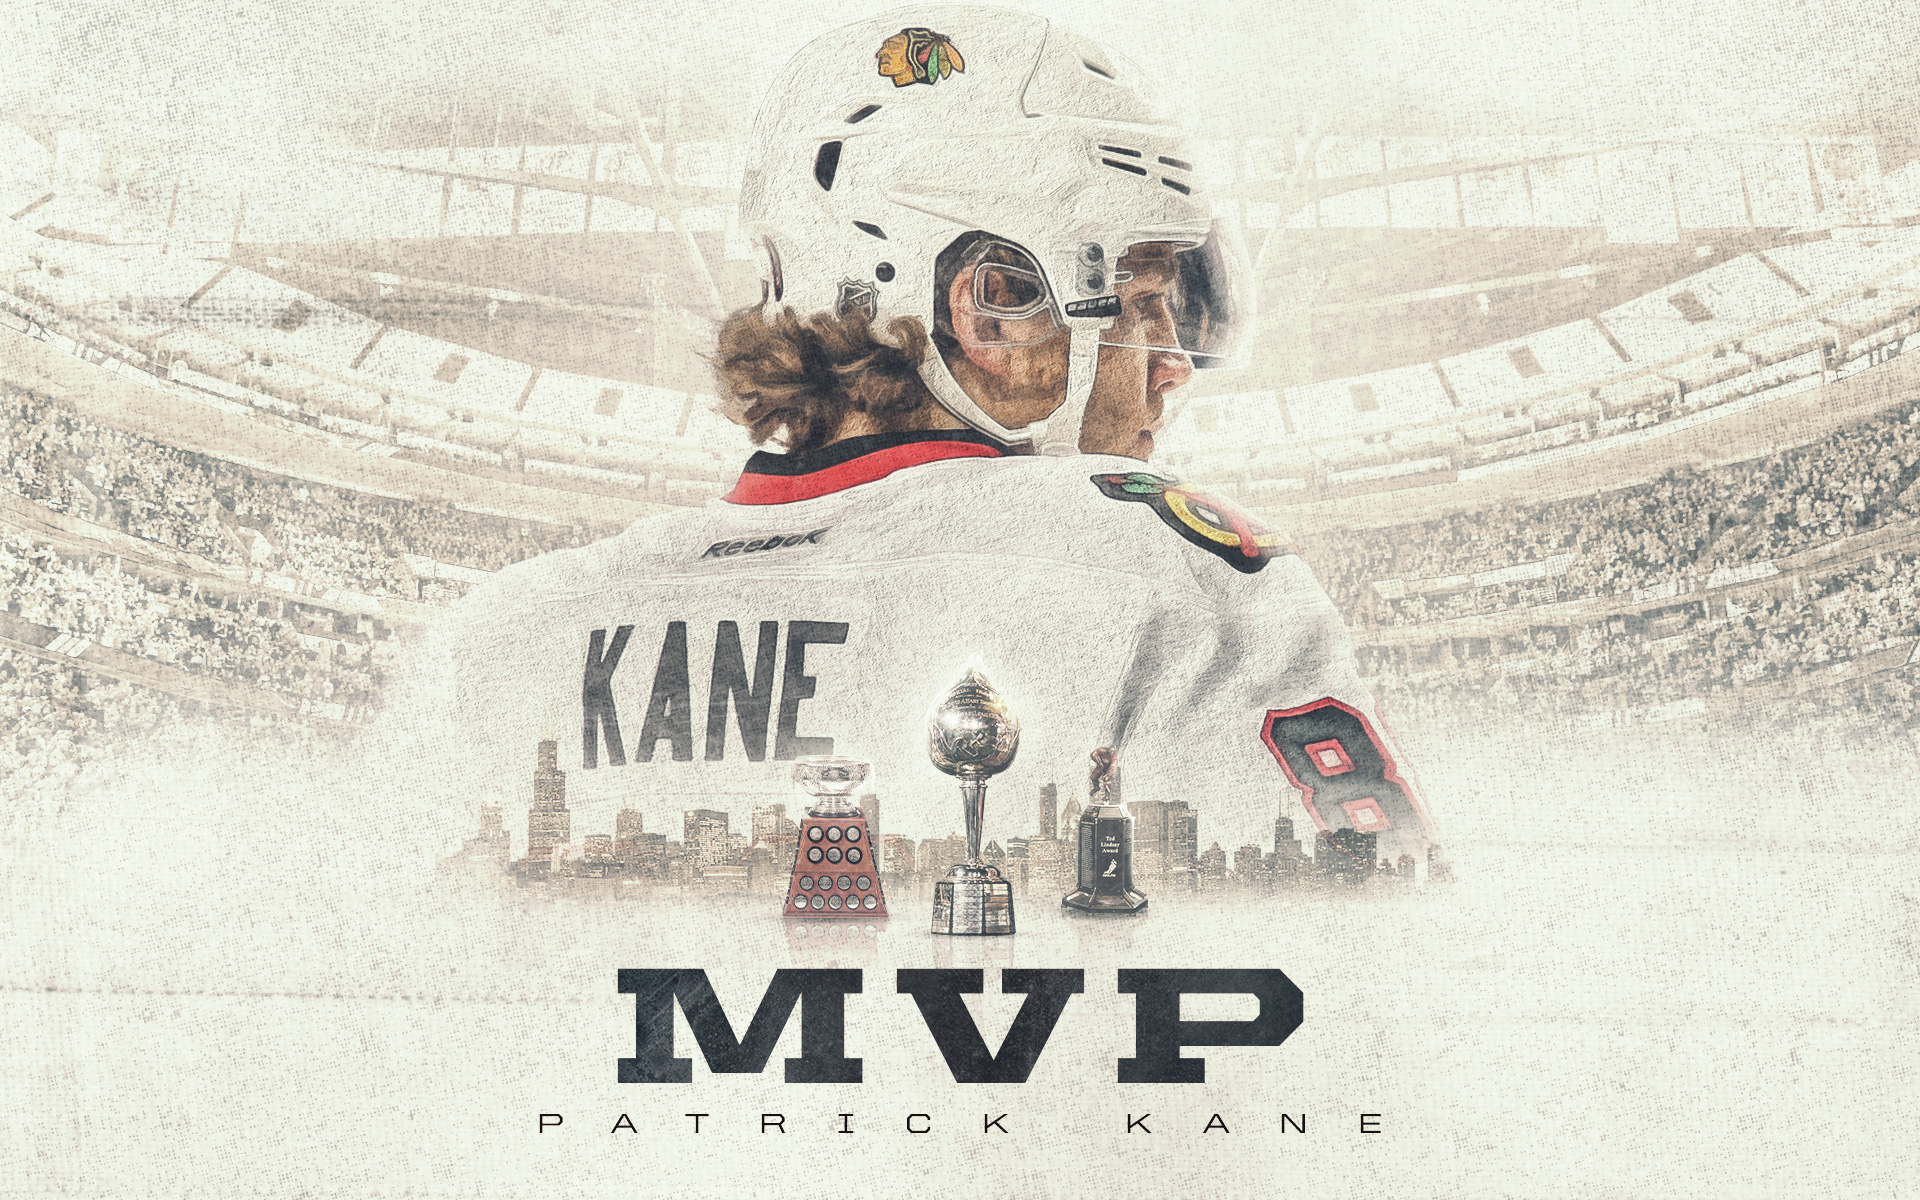 Funny Frog Wallpaper Quotes And Pictures Download Patrick Kane Wallpaper Gallery